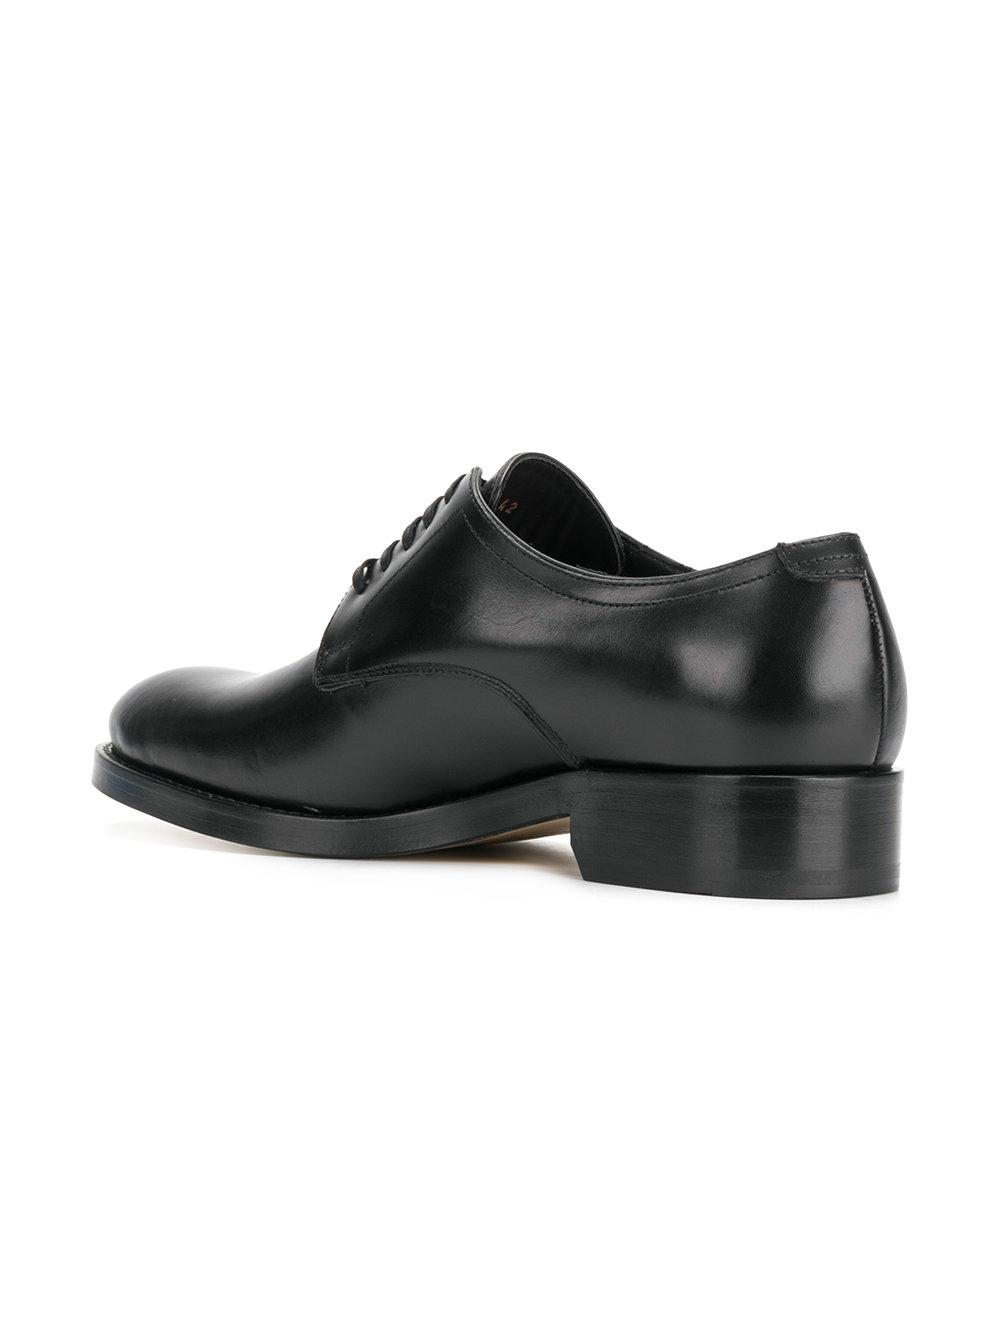 DSquared² Leather Classic Oxfords in Black for Men